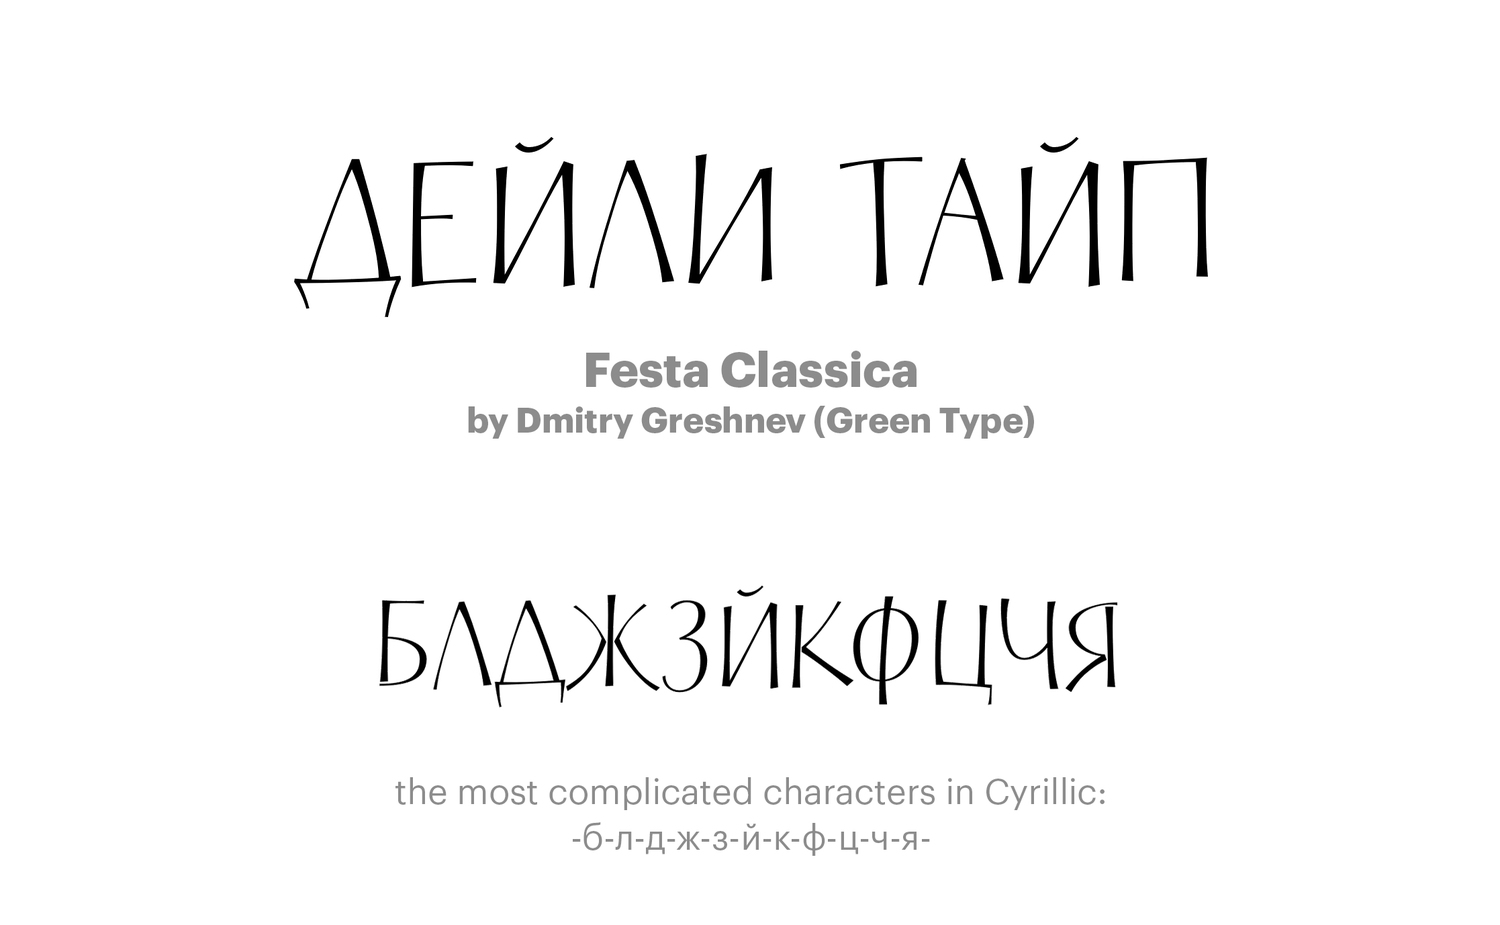 Festa-Classica-by-Dmitry-Greshnev-(Green-Type)